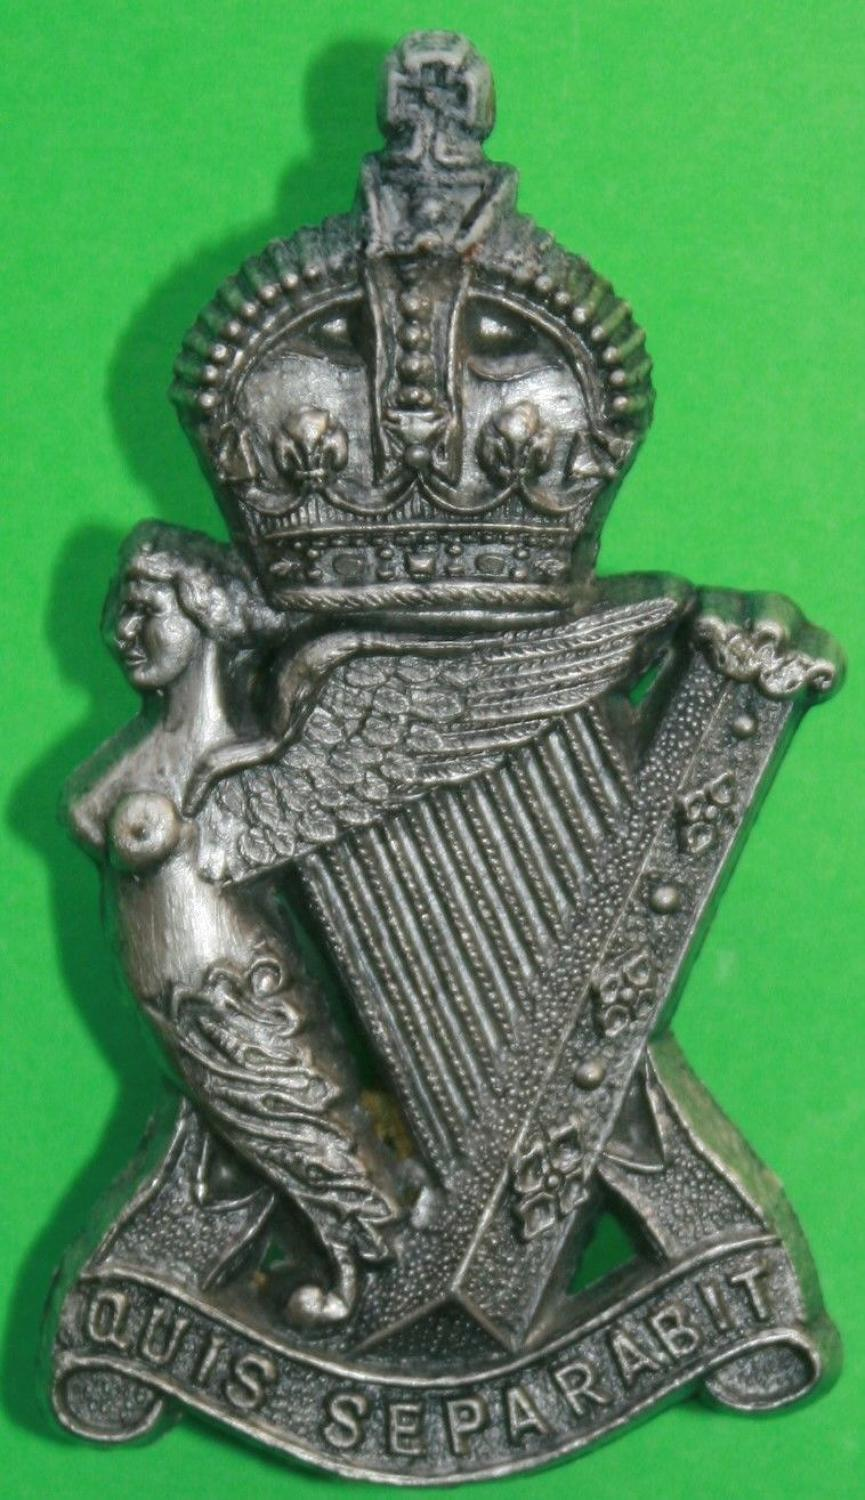 A WWII ROYAL IRISH RIFLES PLASTIC CAP BADGE